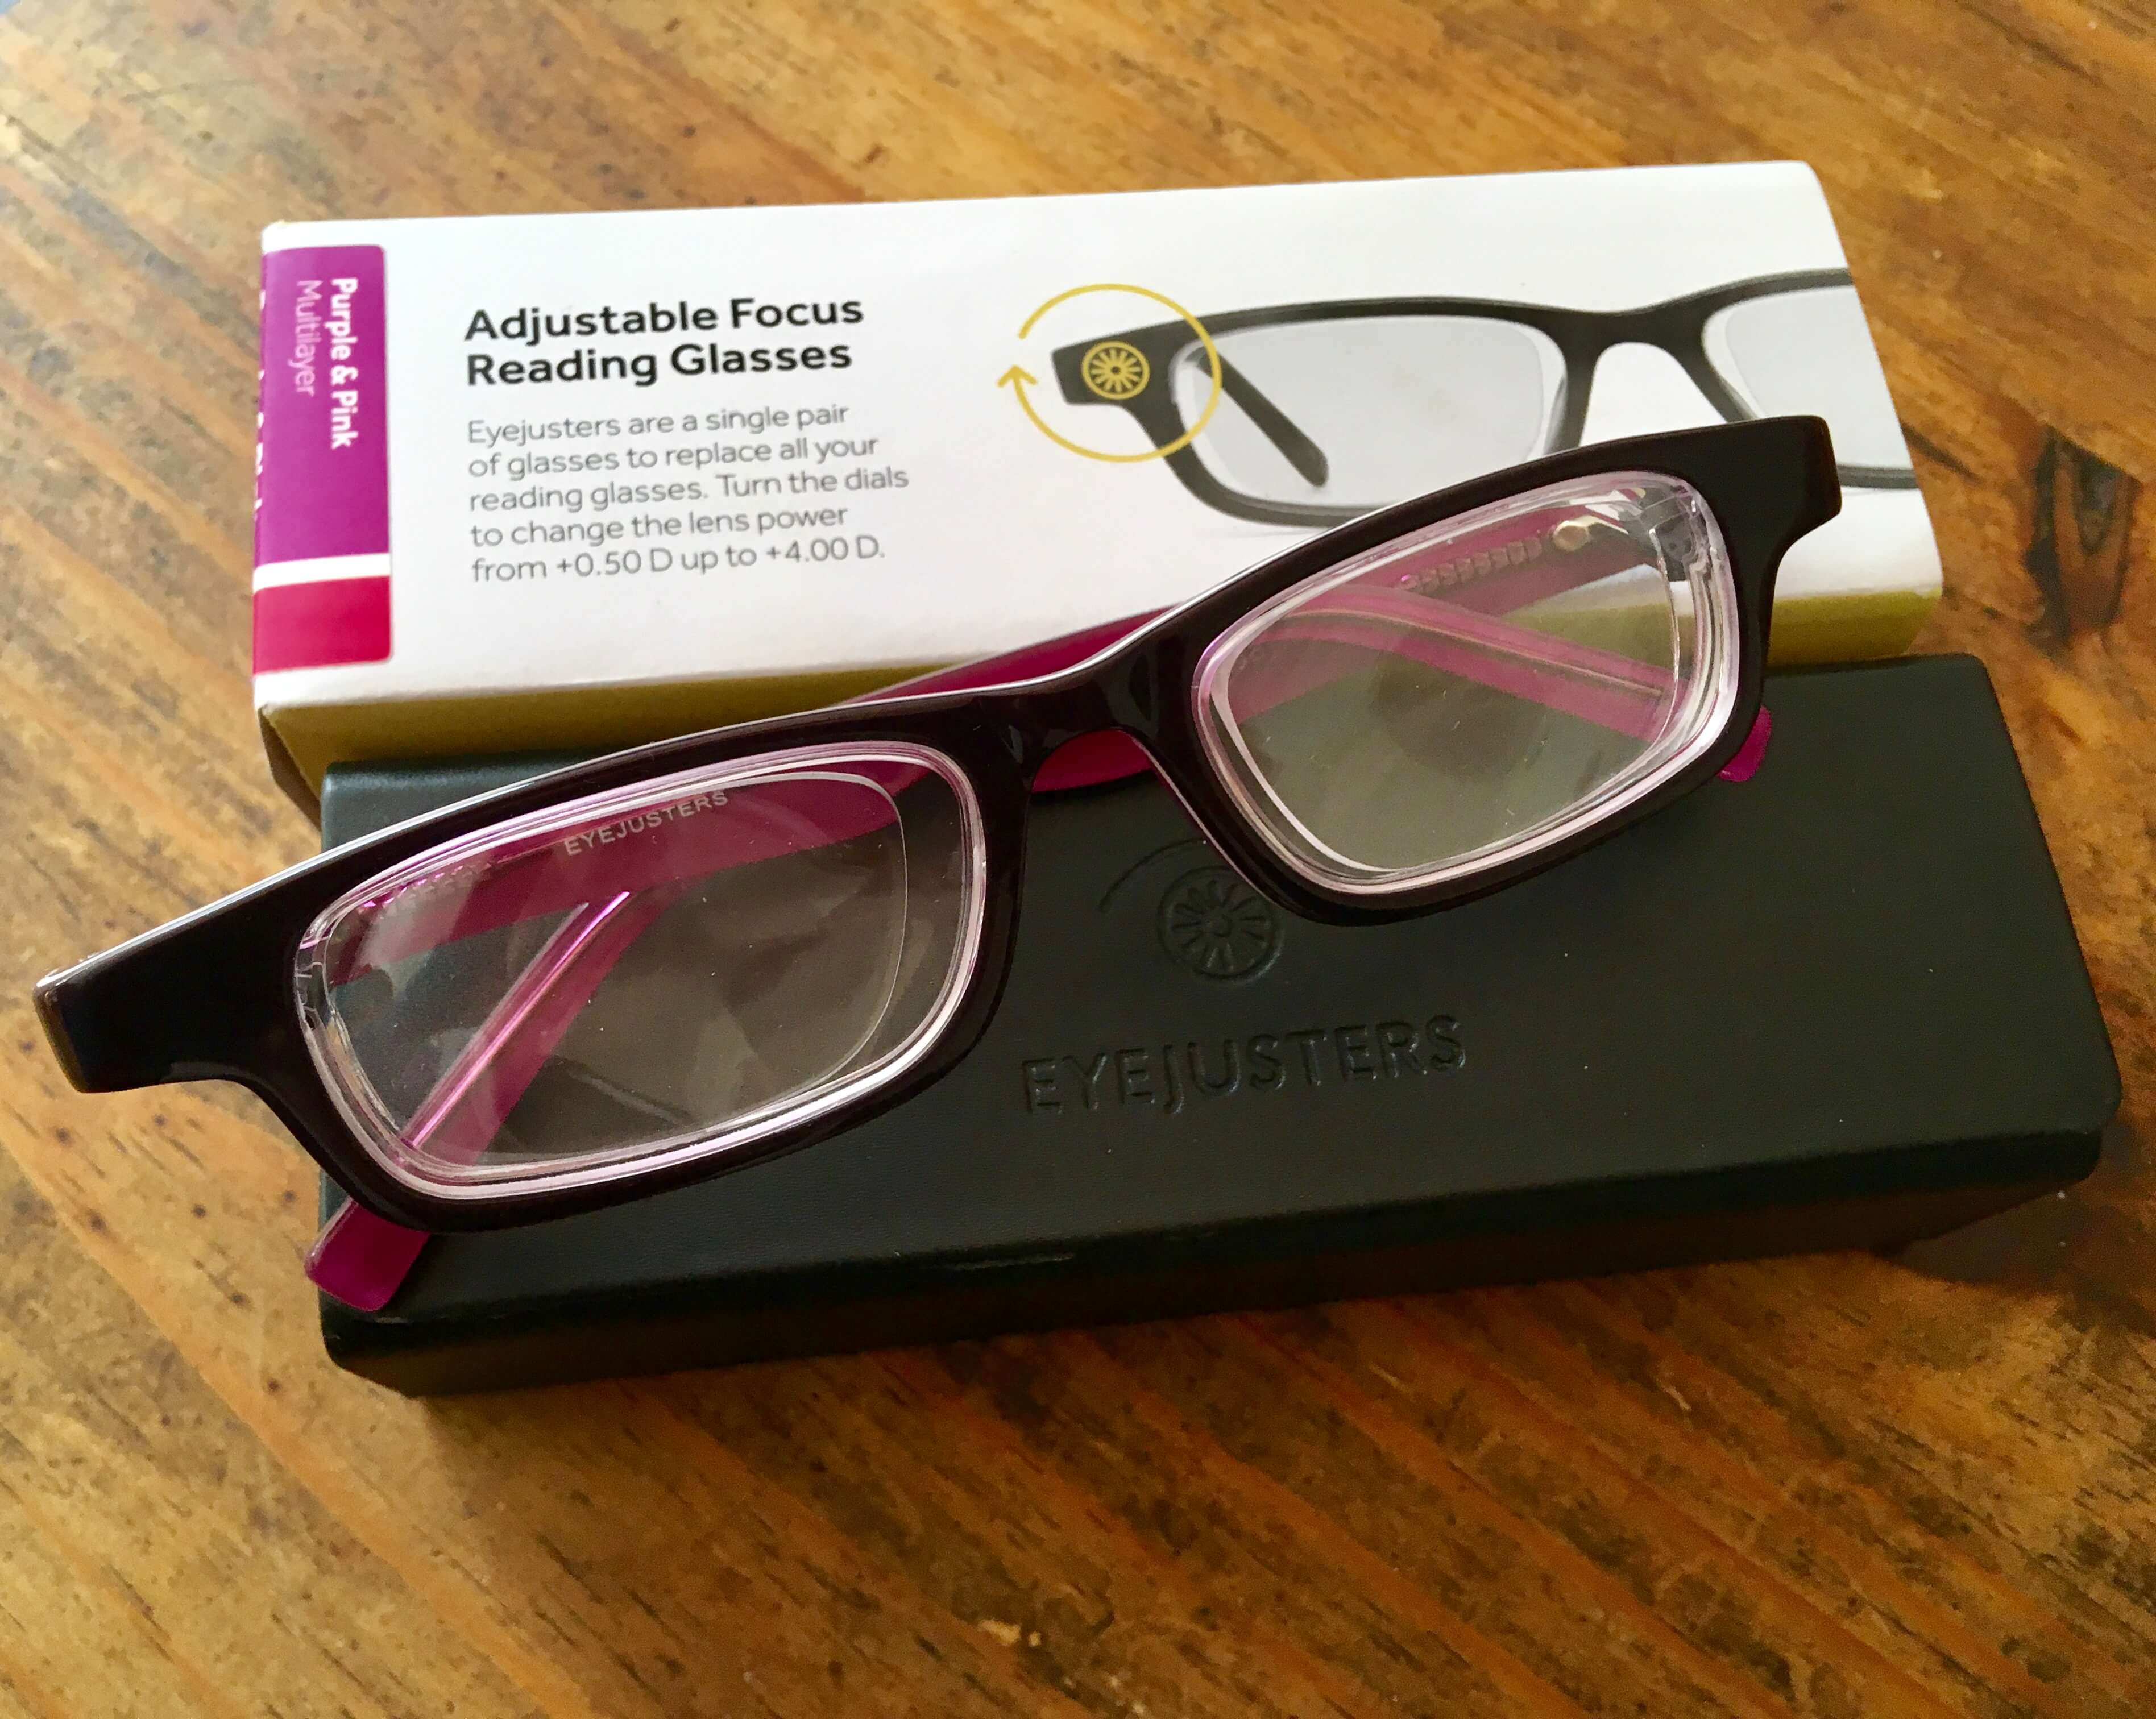 Eyejusters review purple glasses against a black case with white packaging on a wooden backfround